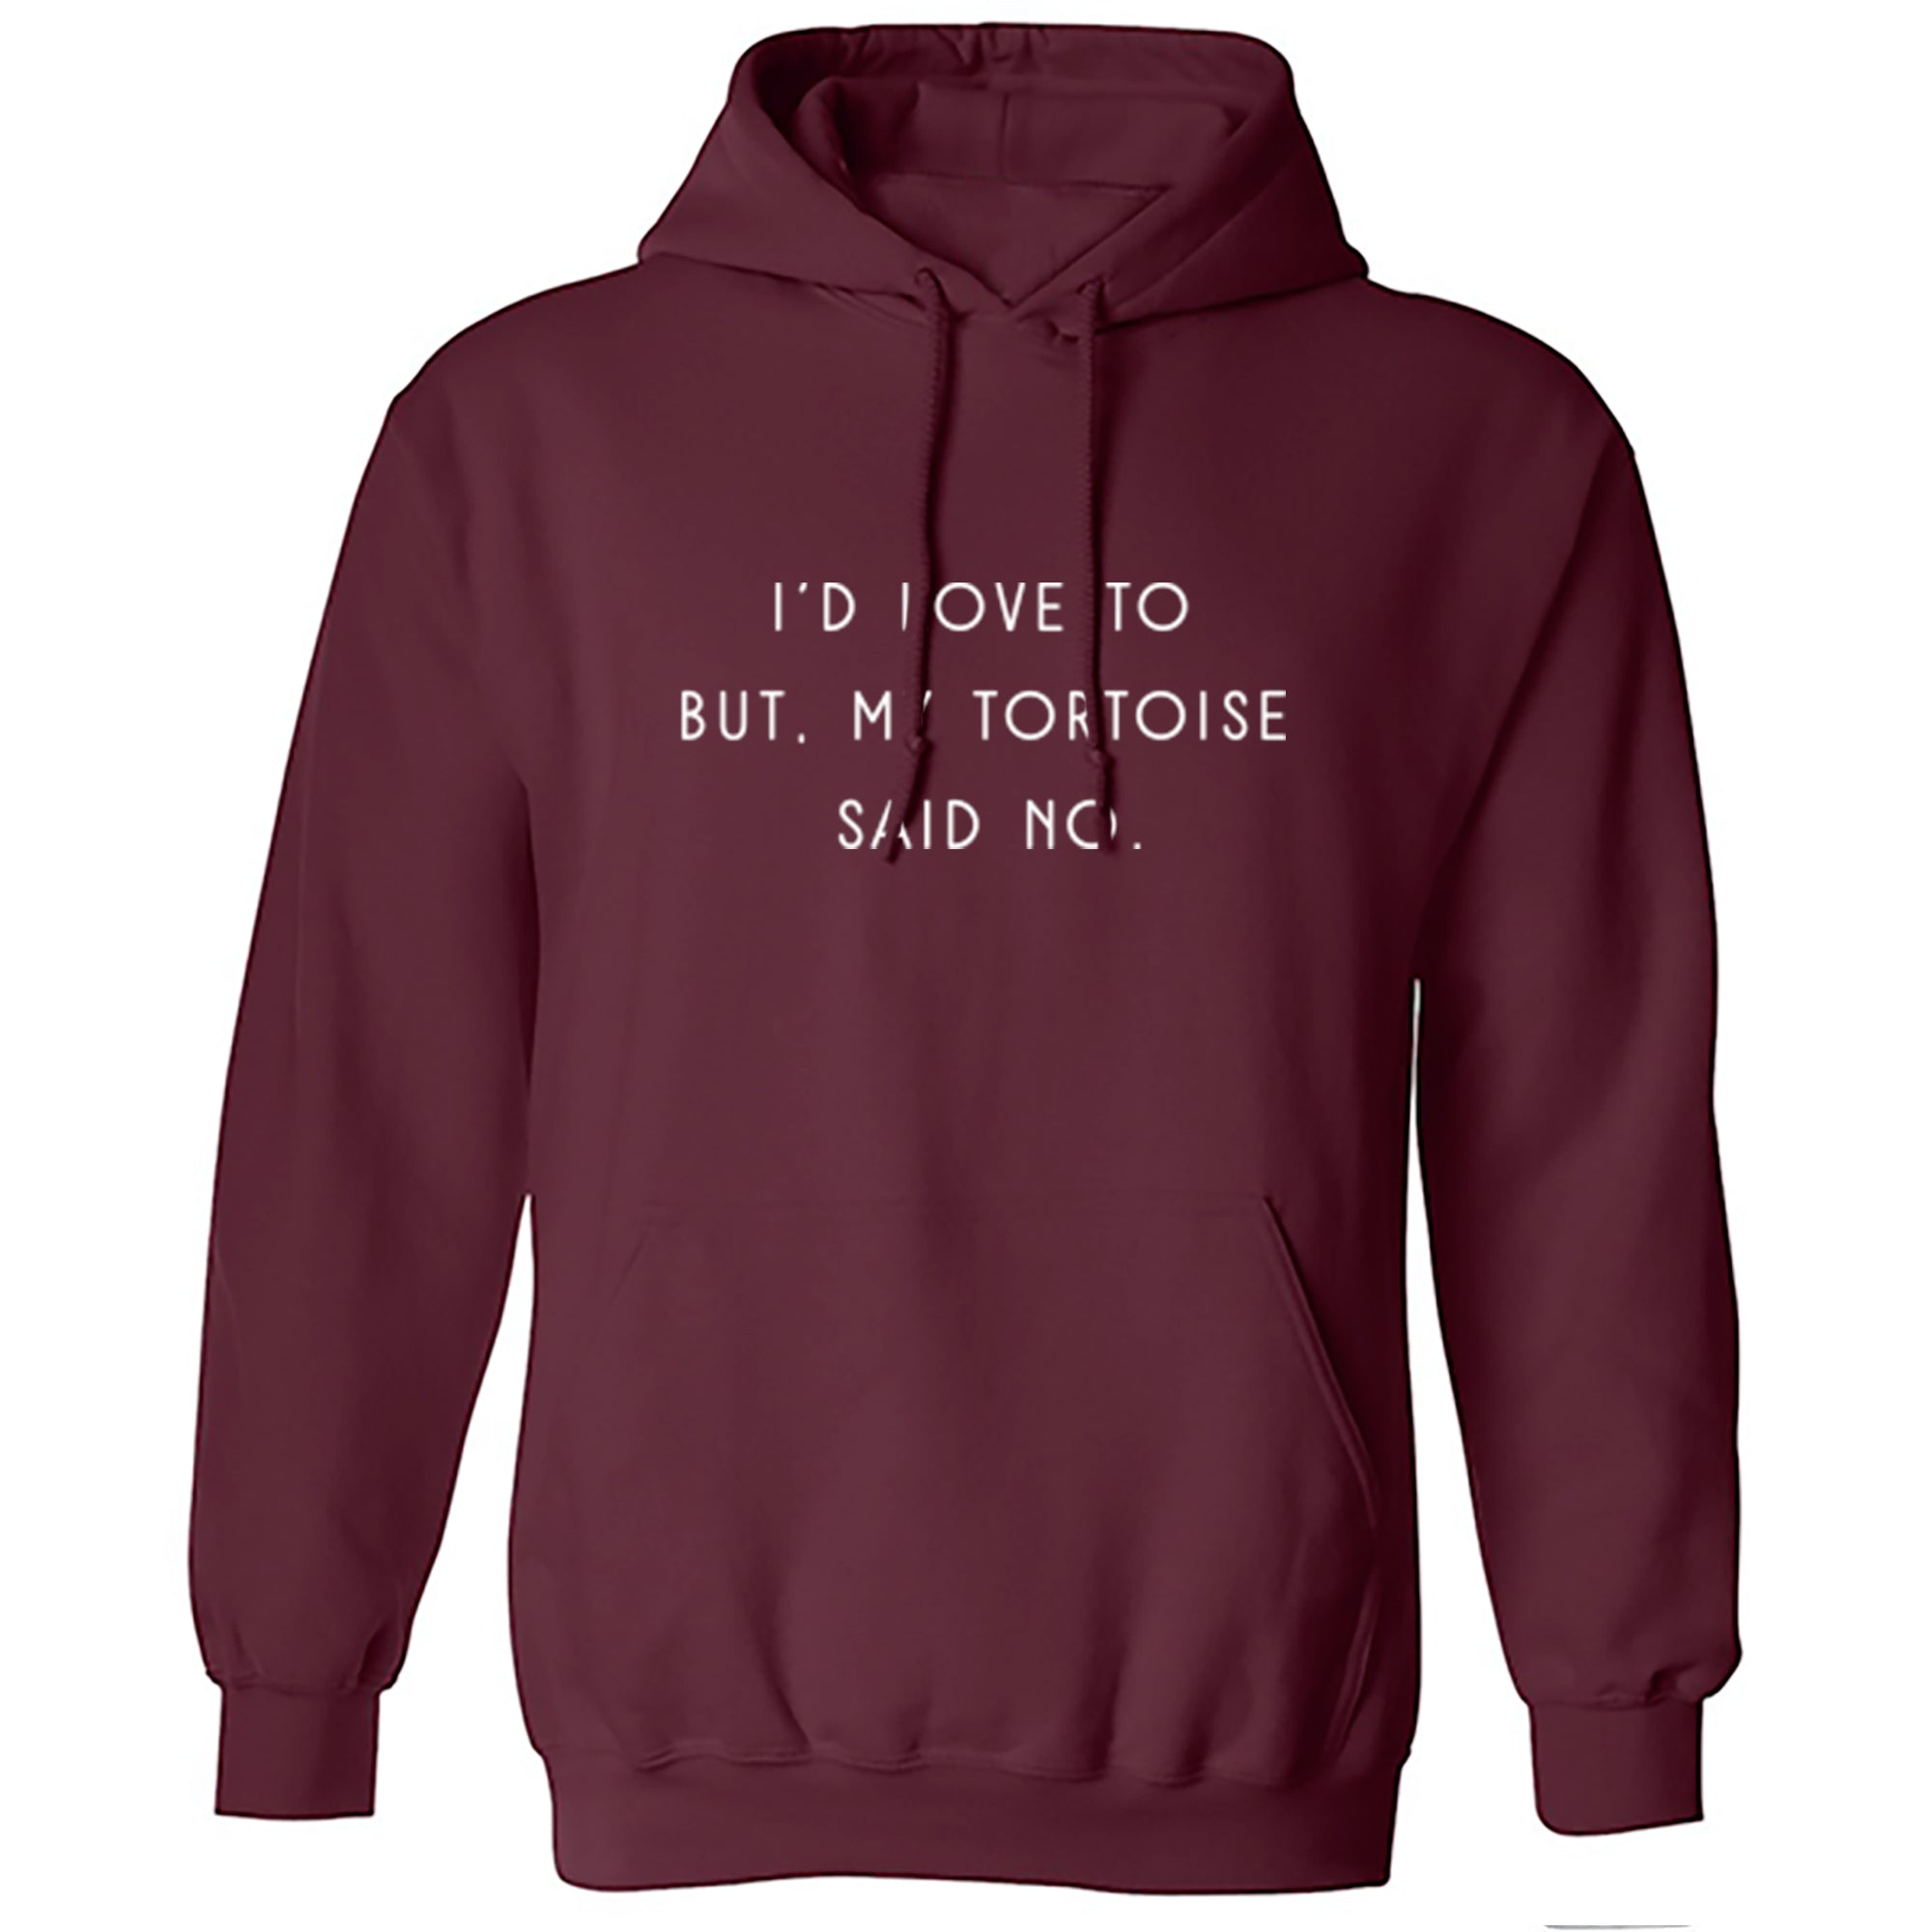 I'd Love To But, My Tortoise Said No Unisex Hoodie S1074 - Illustrated Identity Ltd.